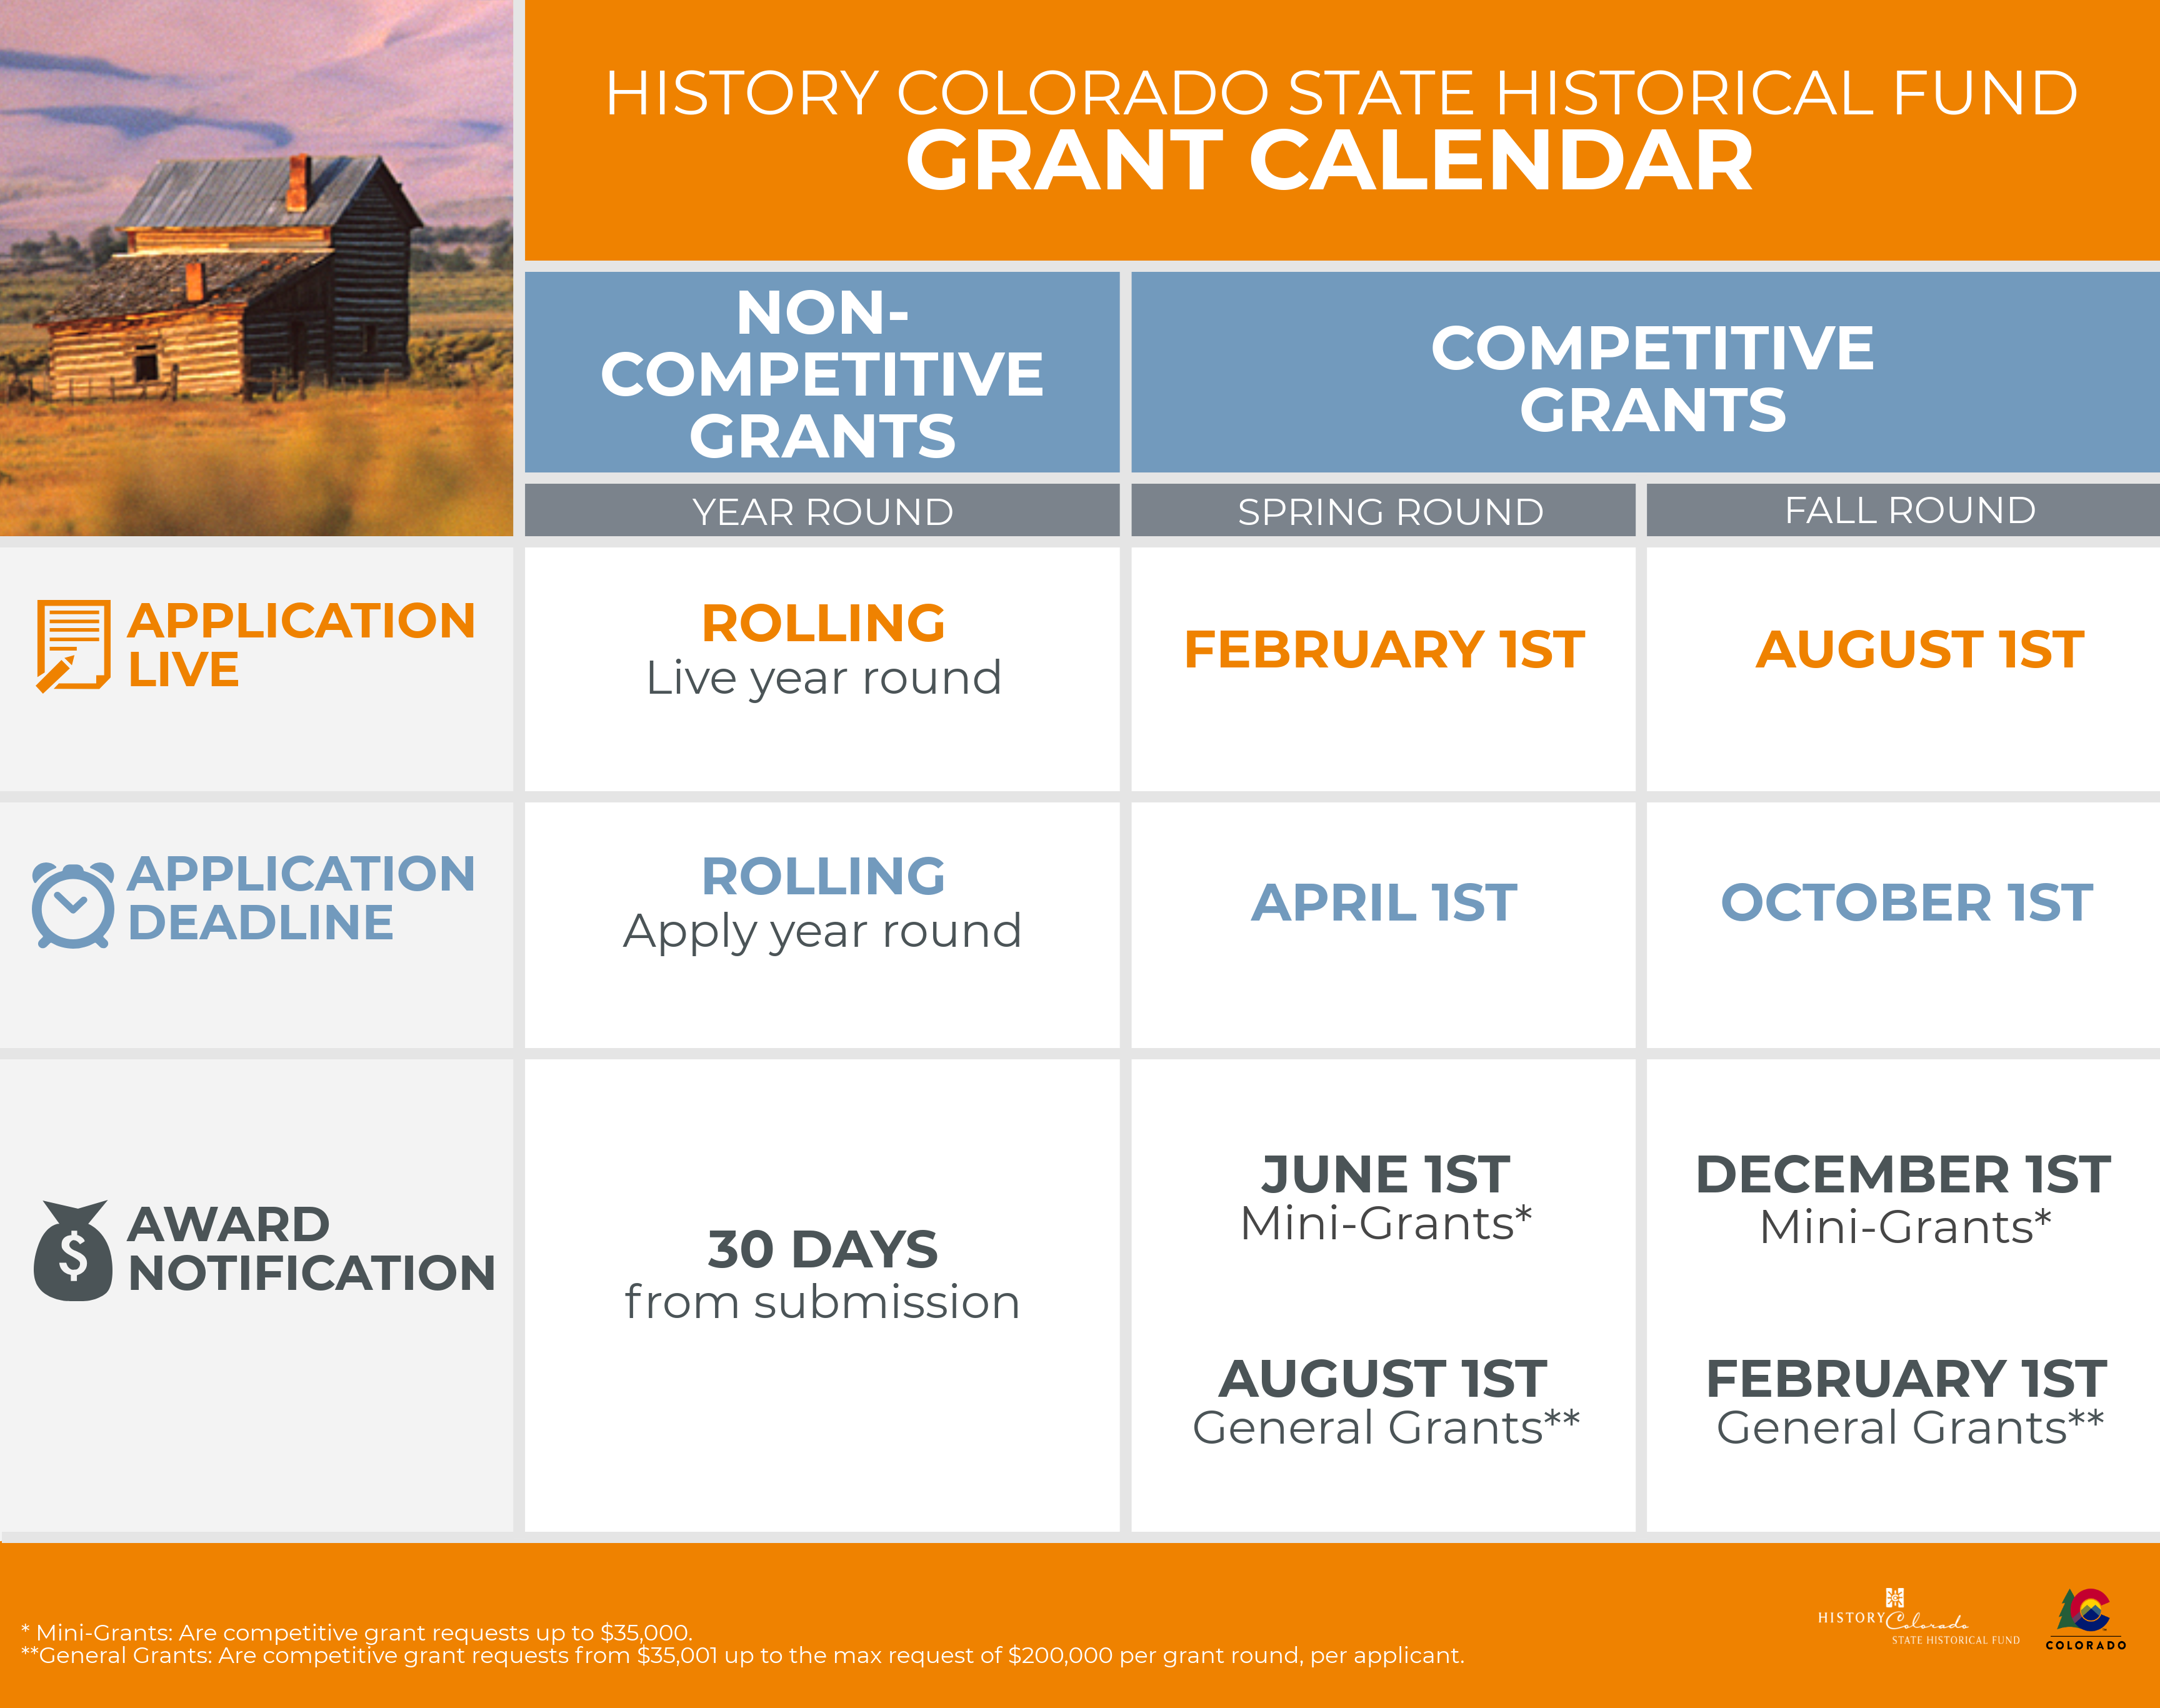 State Historical Fund Grant Calendar